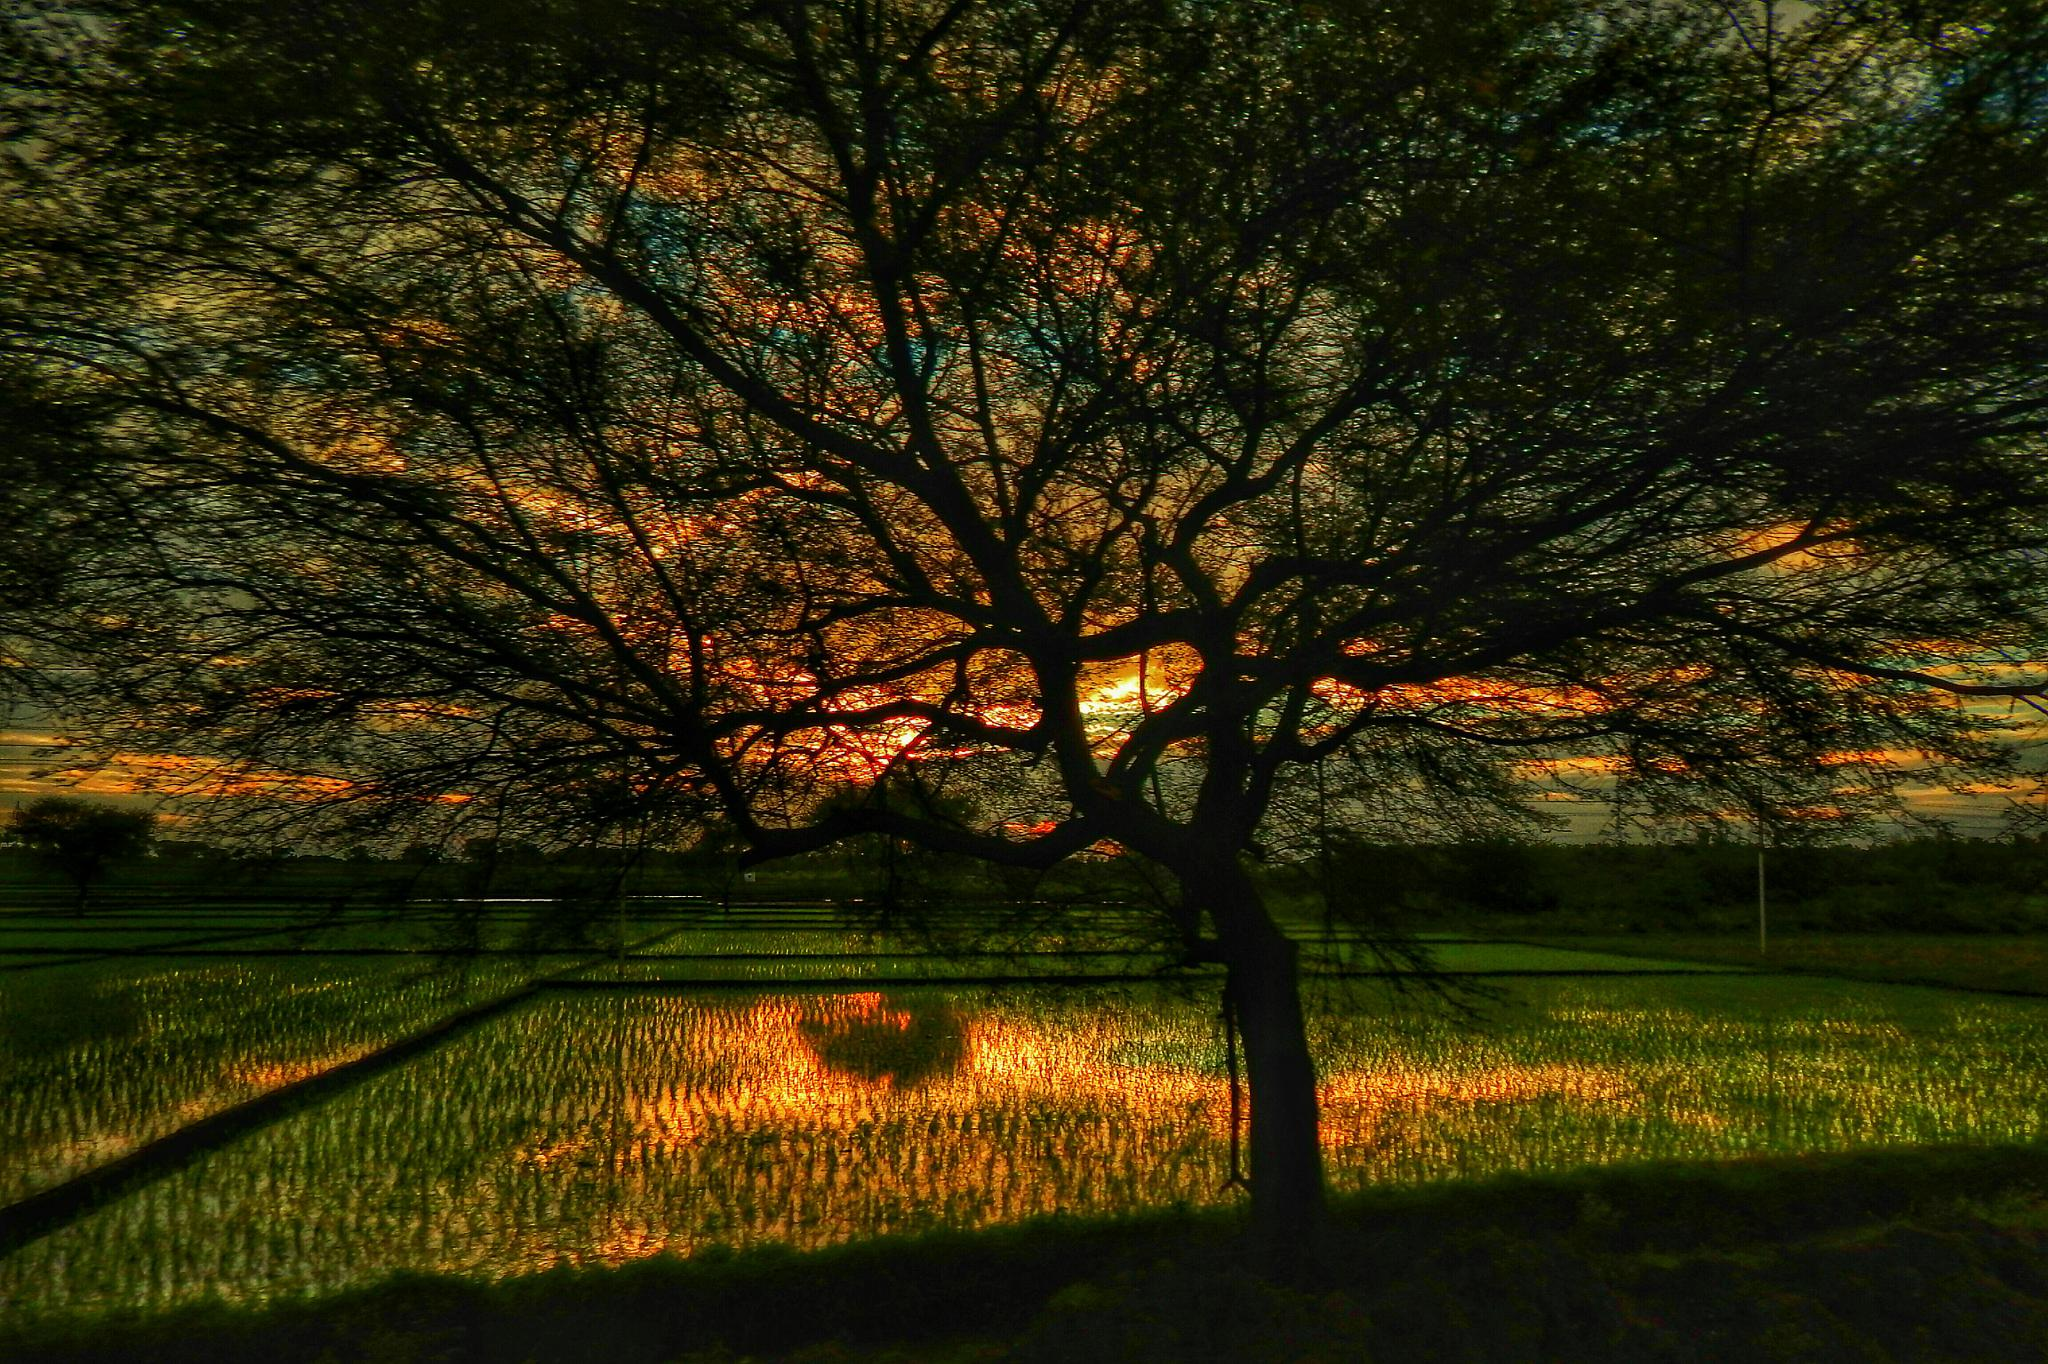 the sky and the tree at sunset by Aritra ghosh